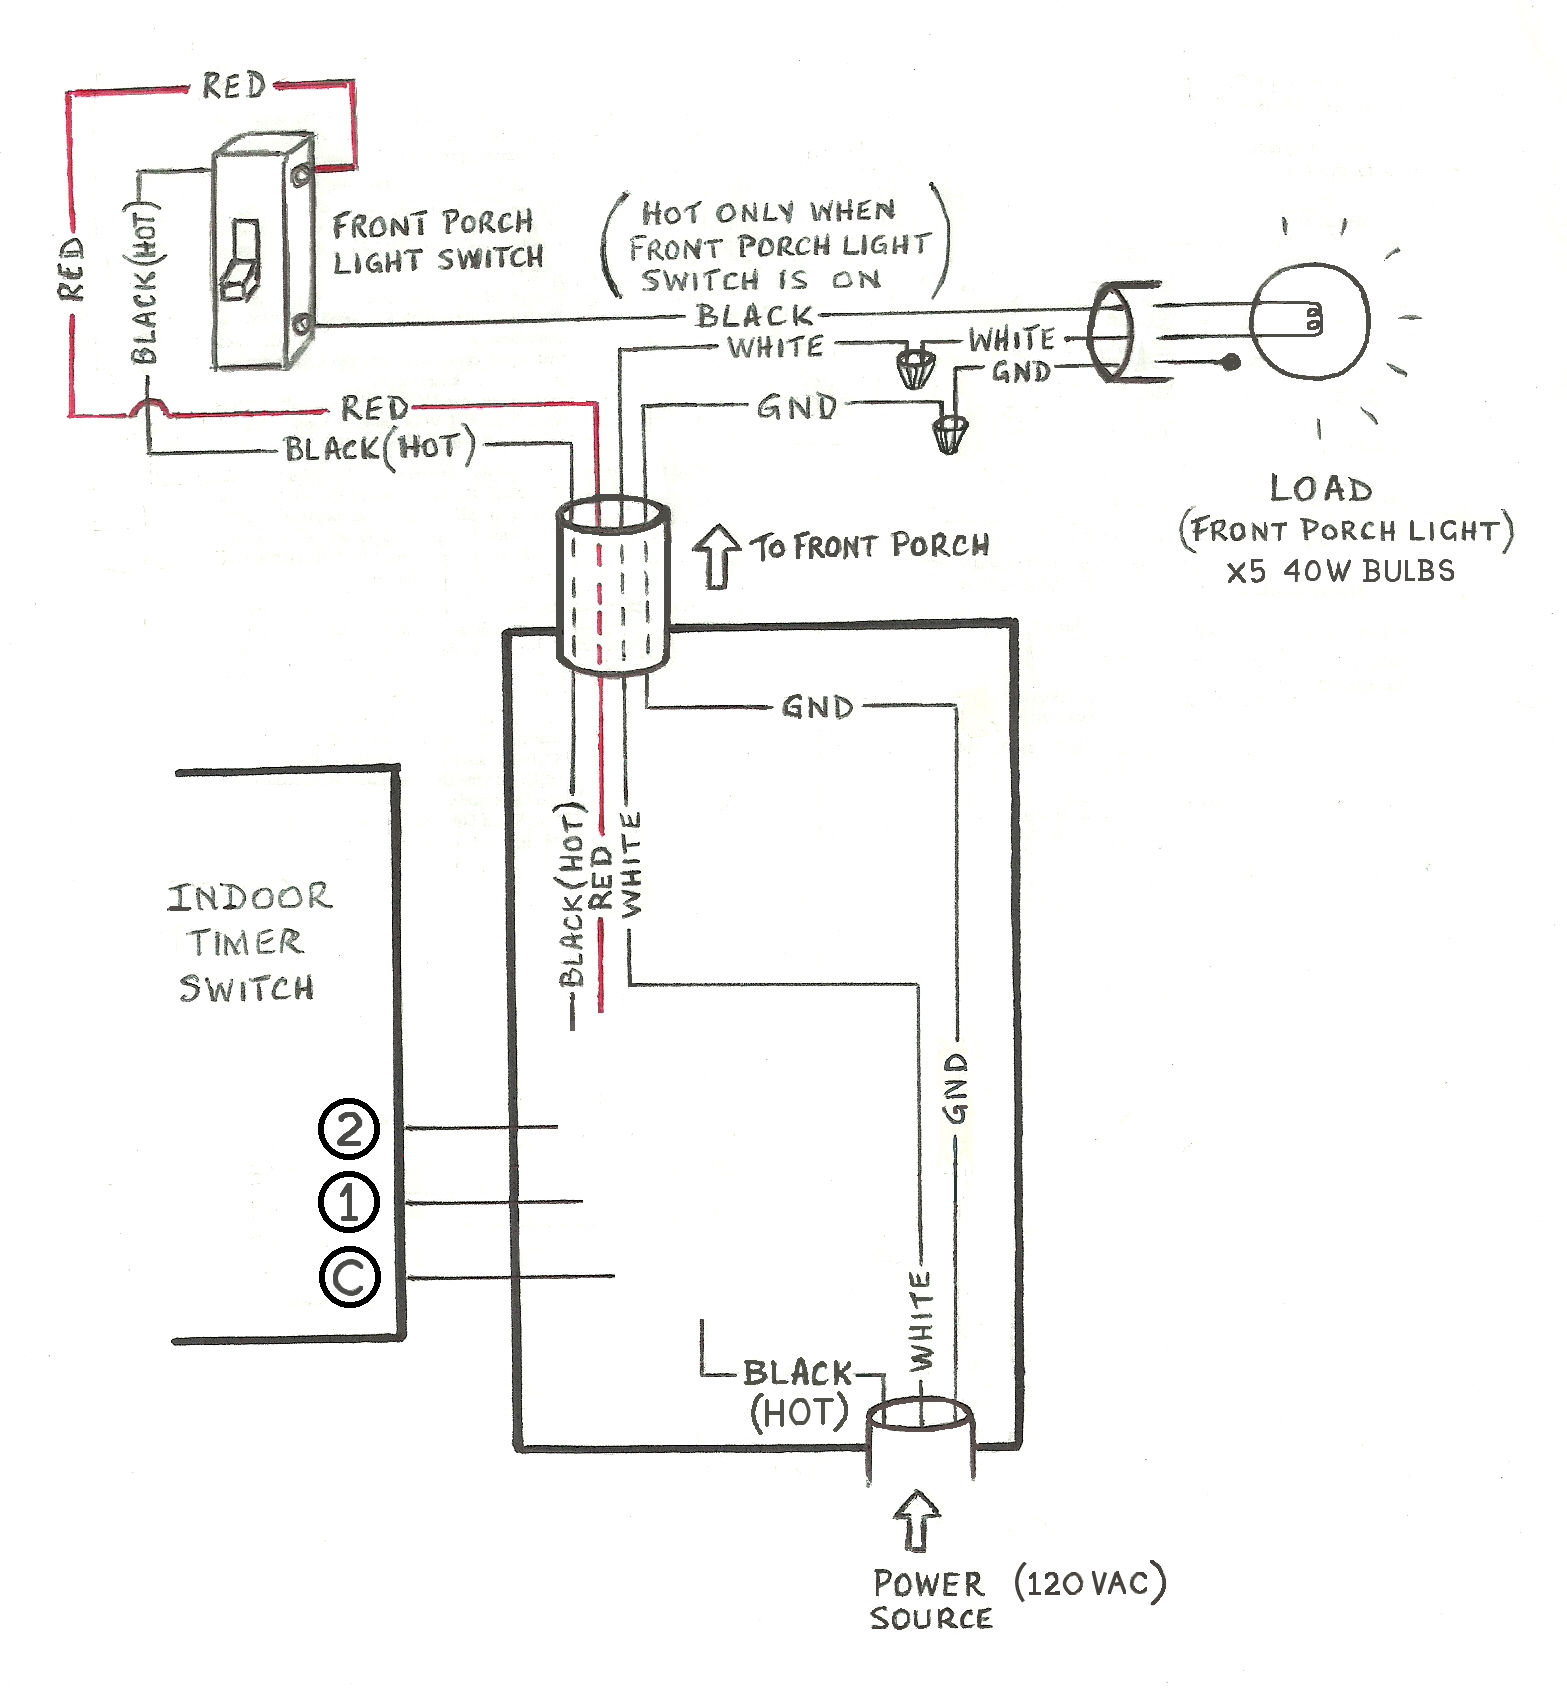 wiring diagram limitorque 1473 wiring library